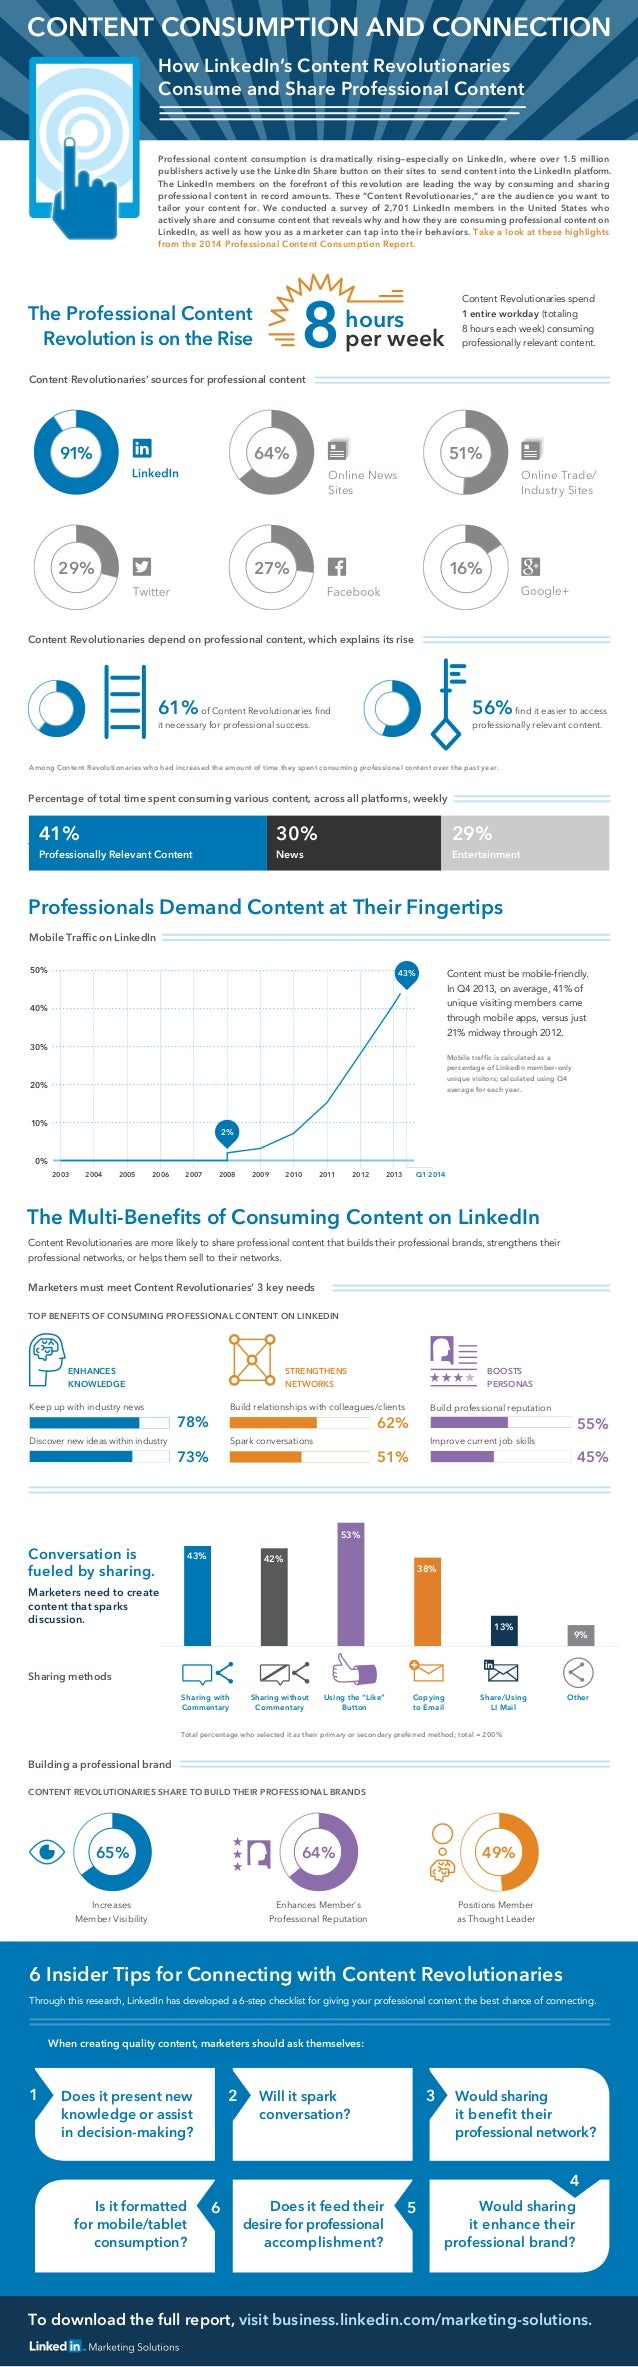 To download the full report, visit business.linkedin.com/marketing-solutions. 61%of Content Revolutionaries find it necessa...